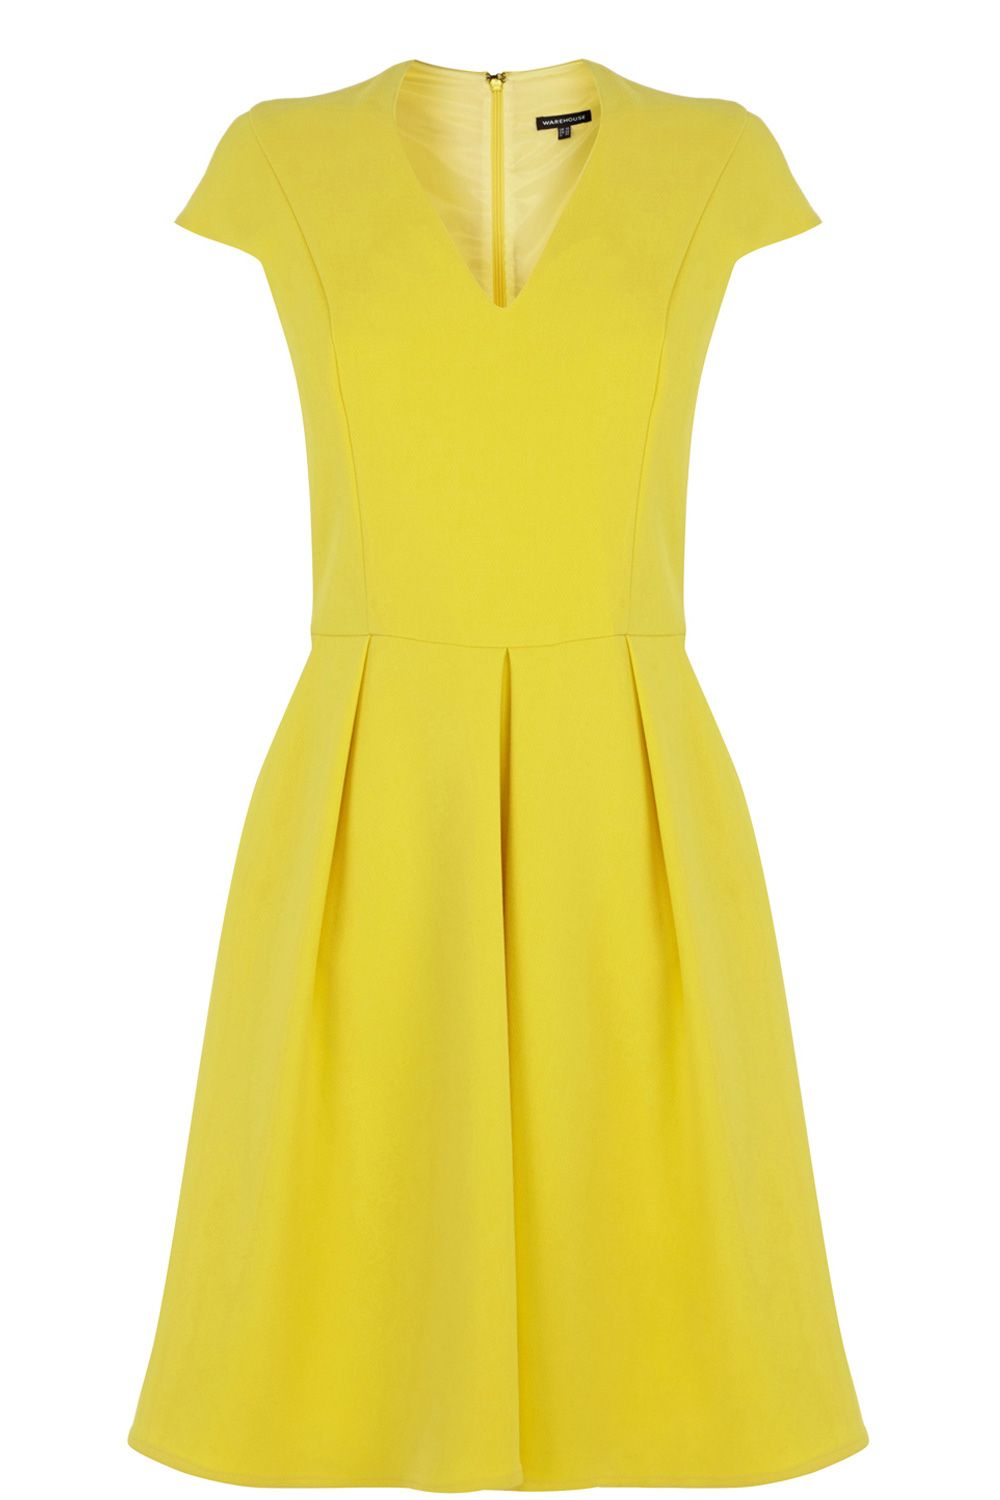 Love cap sleeves and yellow